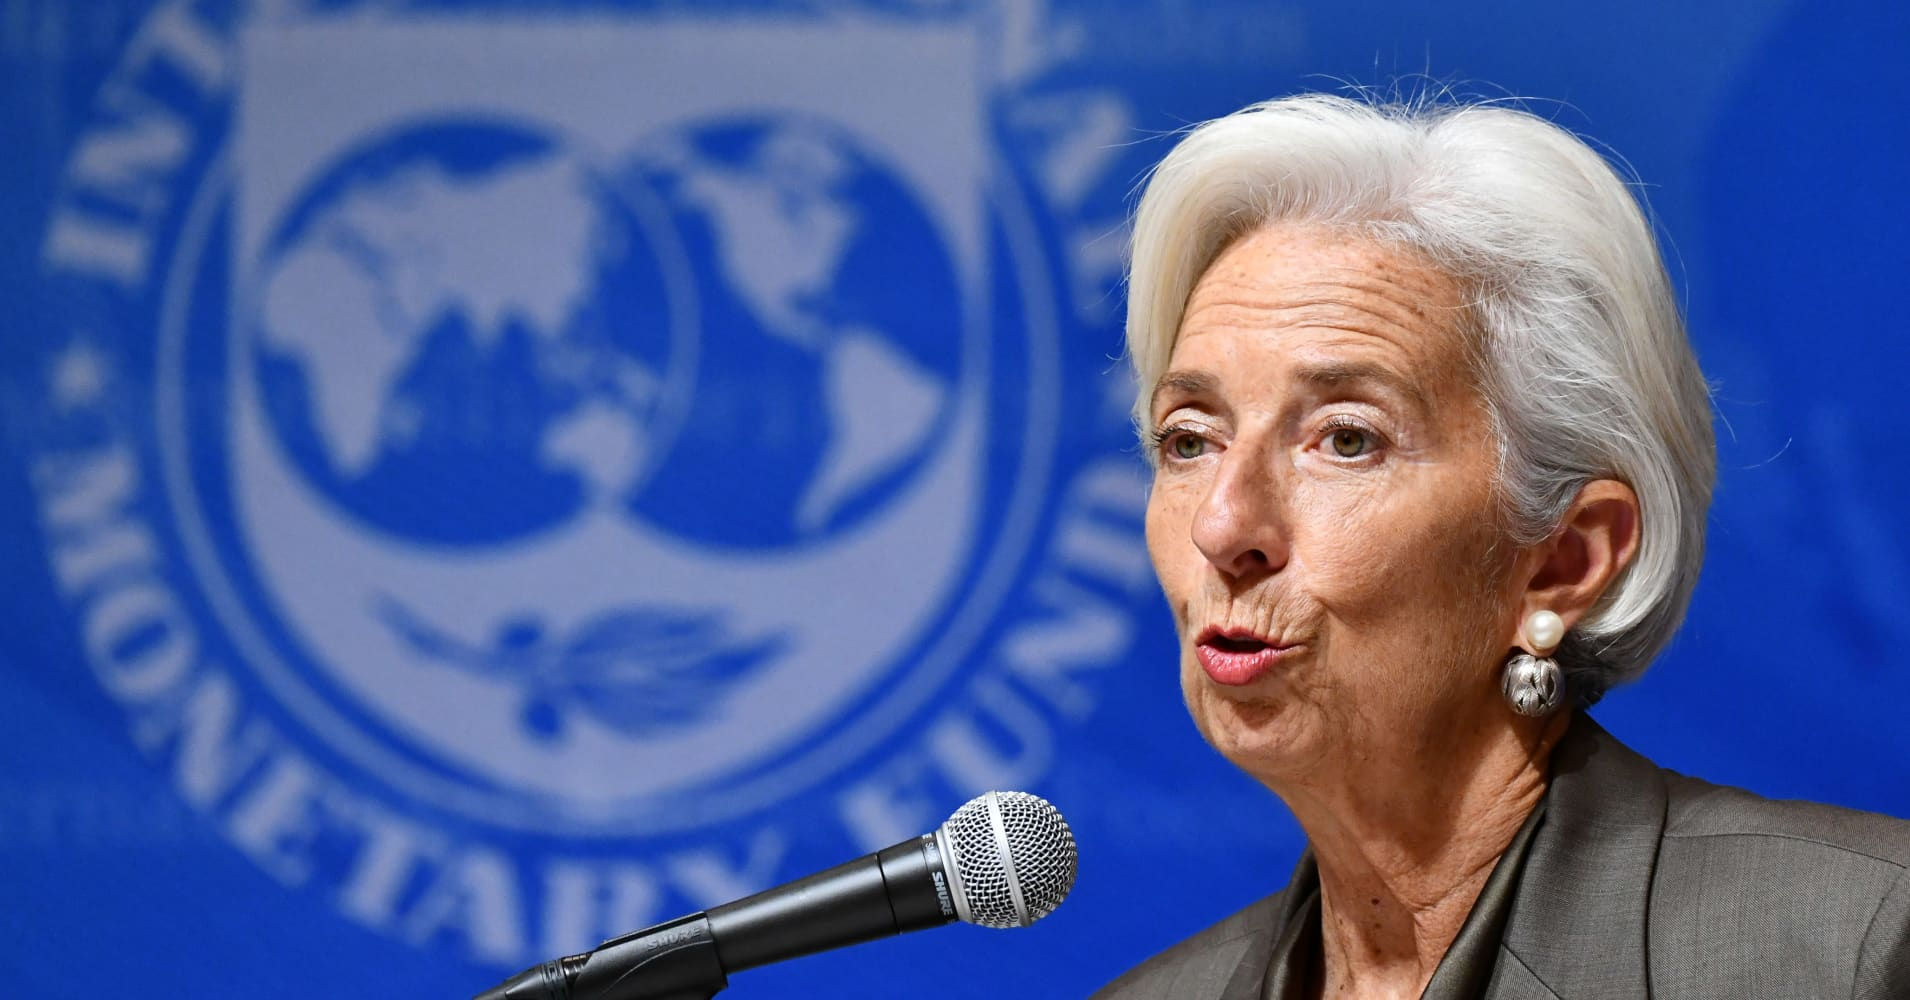 IMF's Christine Lagarde postpones trip to the Middle East